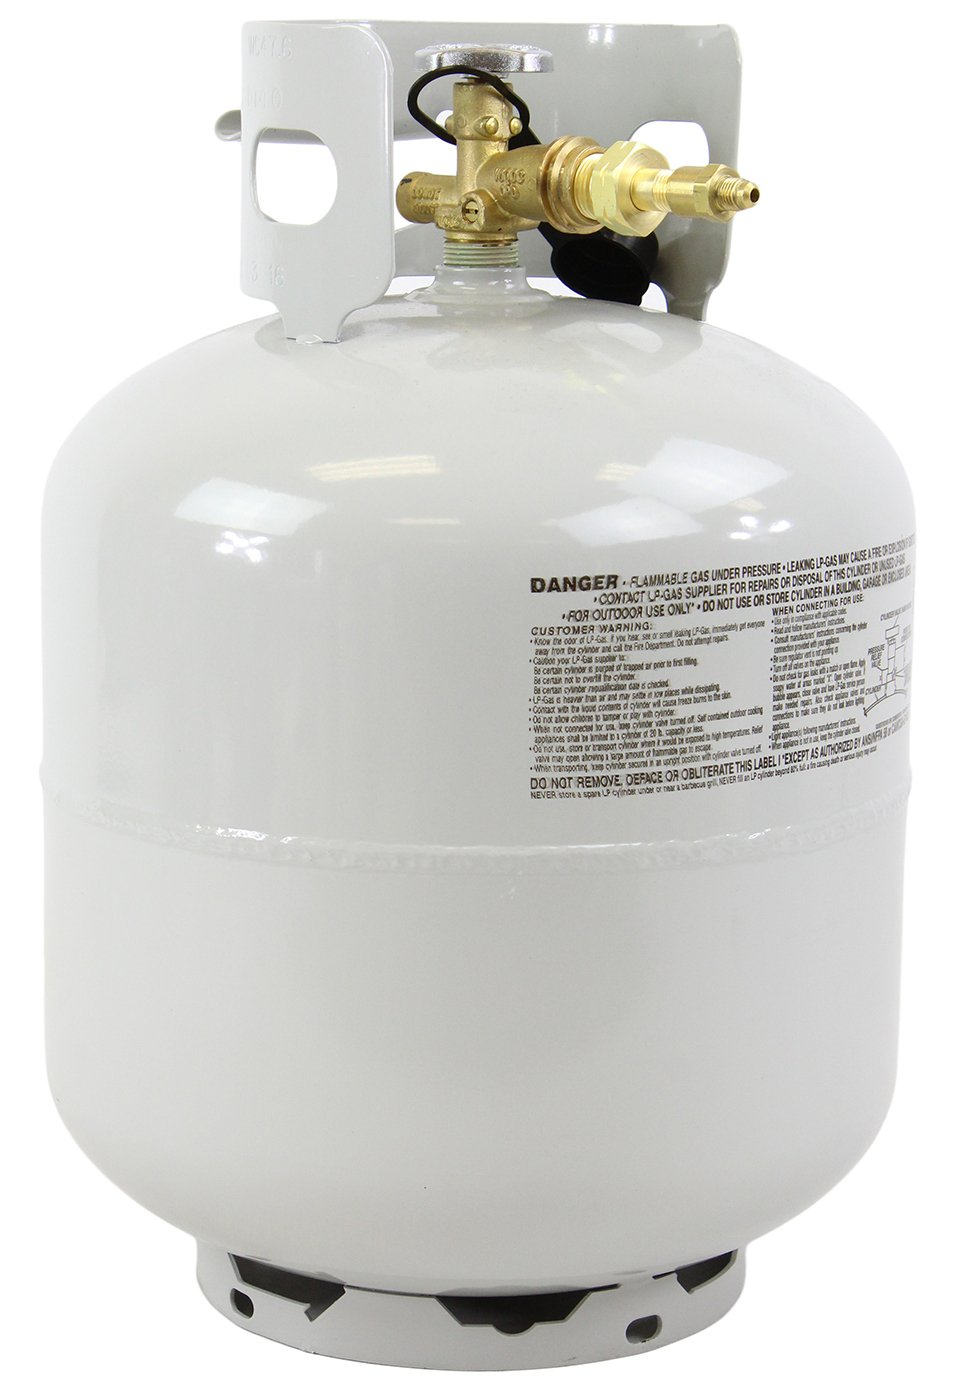 Best Value Vacs High Purity USA N-Butane Tank- Lot Analysis 99.83% - 99.5% Guaranteed, 20 lbs Solvent by BEST VALUE VACS (Image #1)